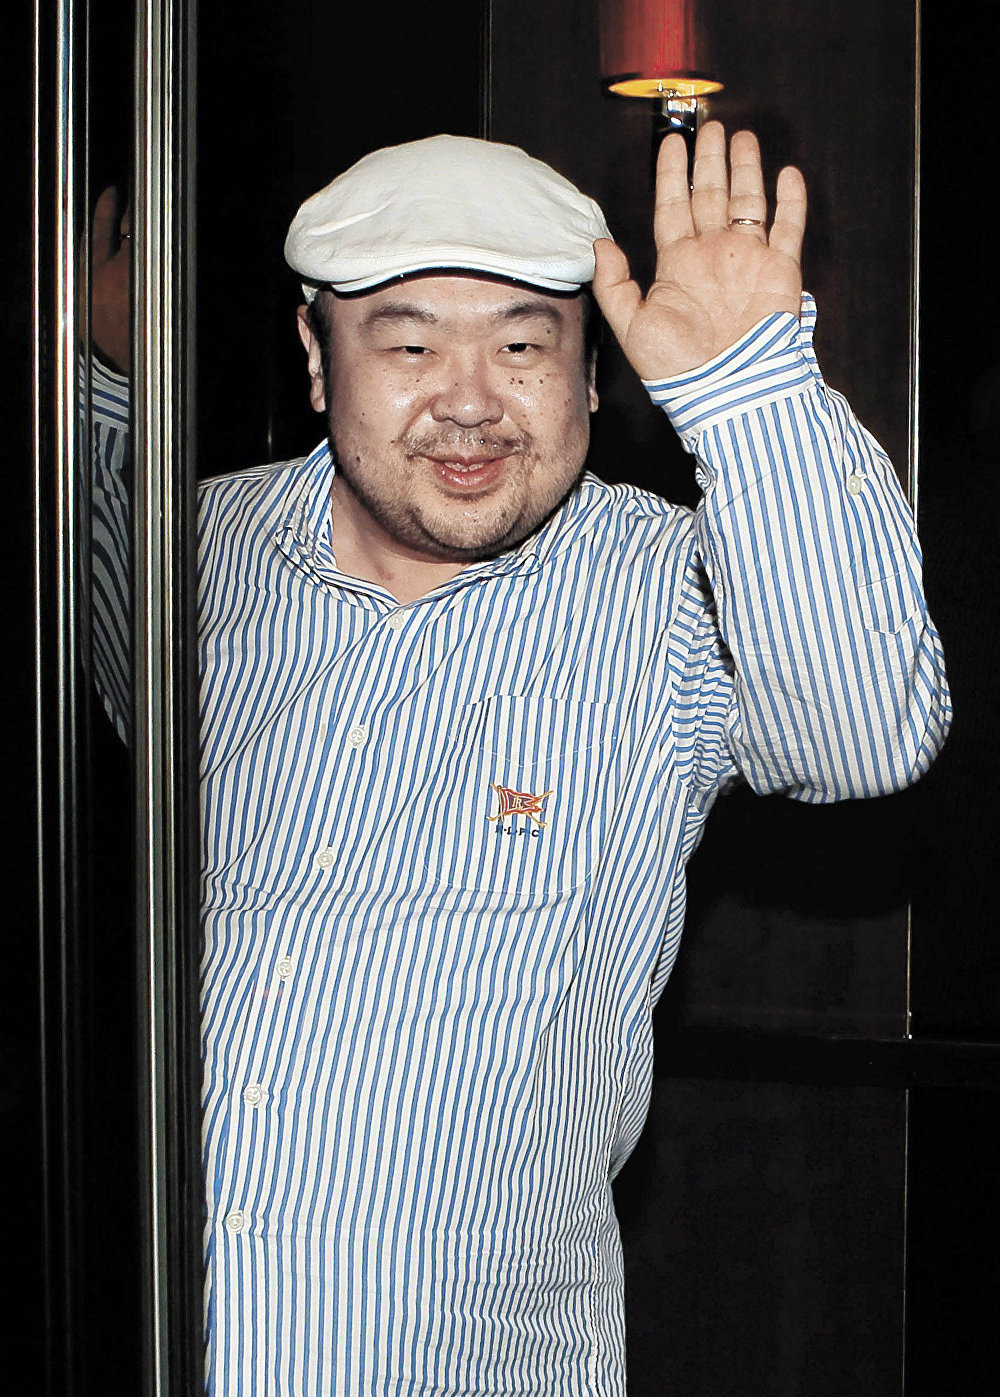 In this June 4, 2010 file photo, Kim Jong-nam, the eldest son of North Korean leader Kim Jong Il, waves after his first-ever interview with South Korean media in Macau, China